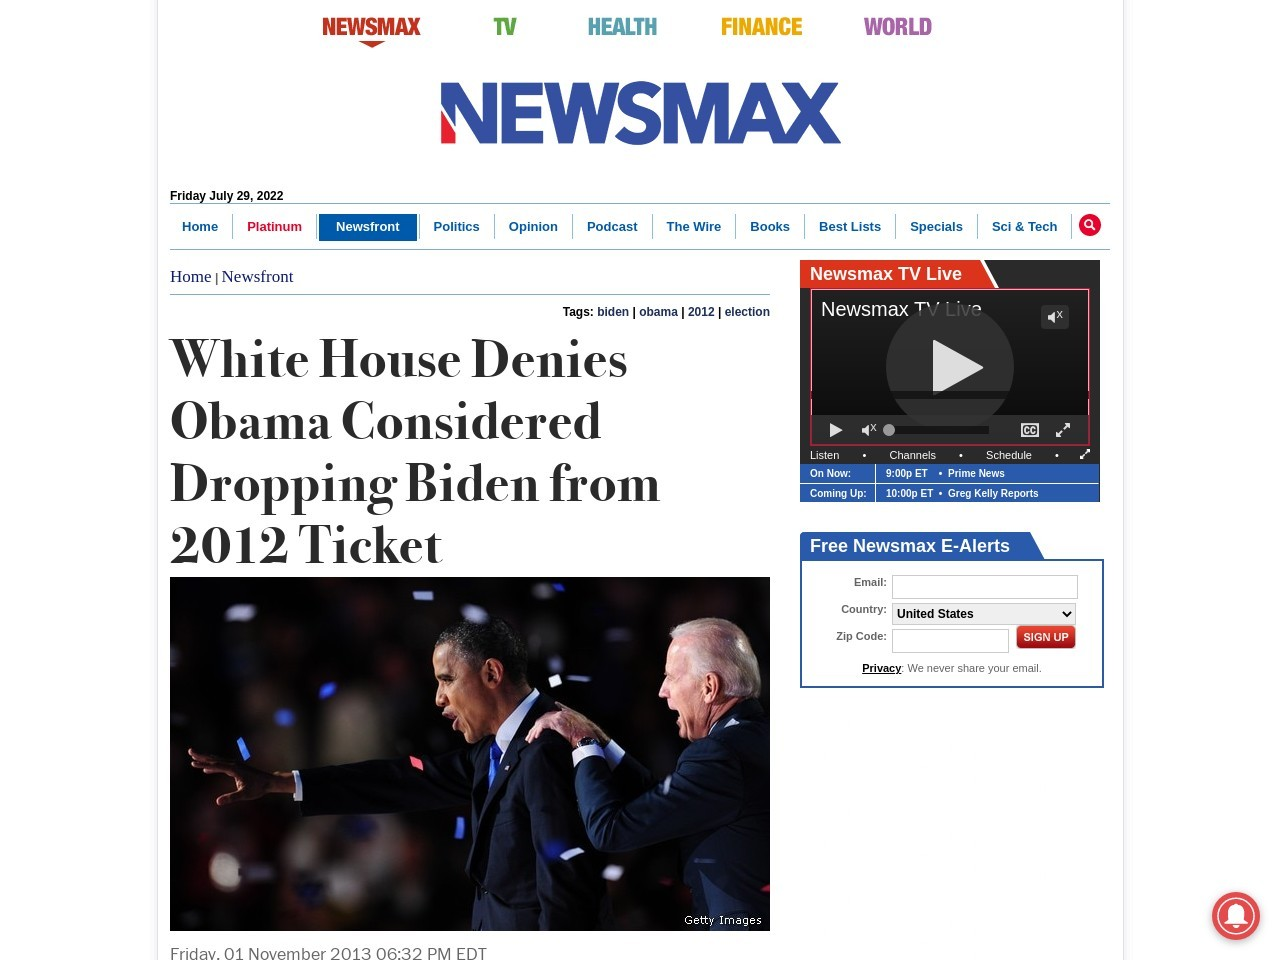 White House Denies Obama Considered Dropping Biden from 2012 Ticket